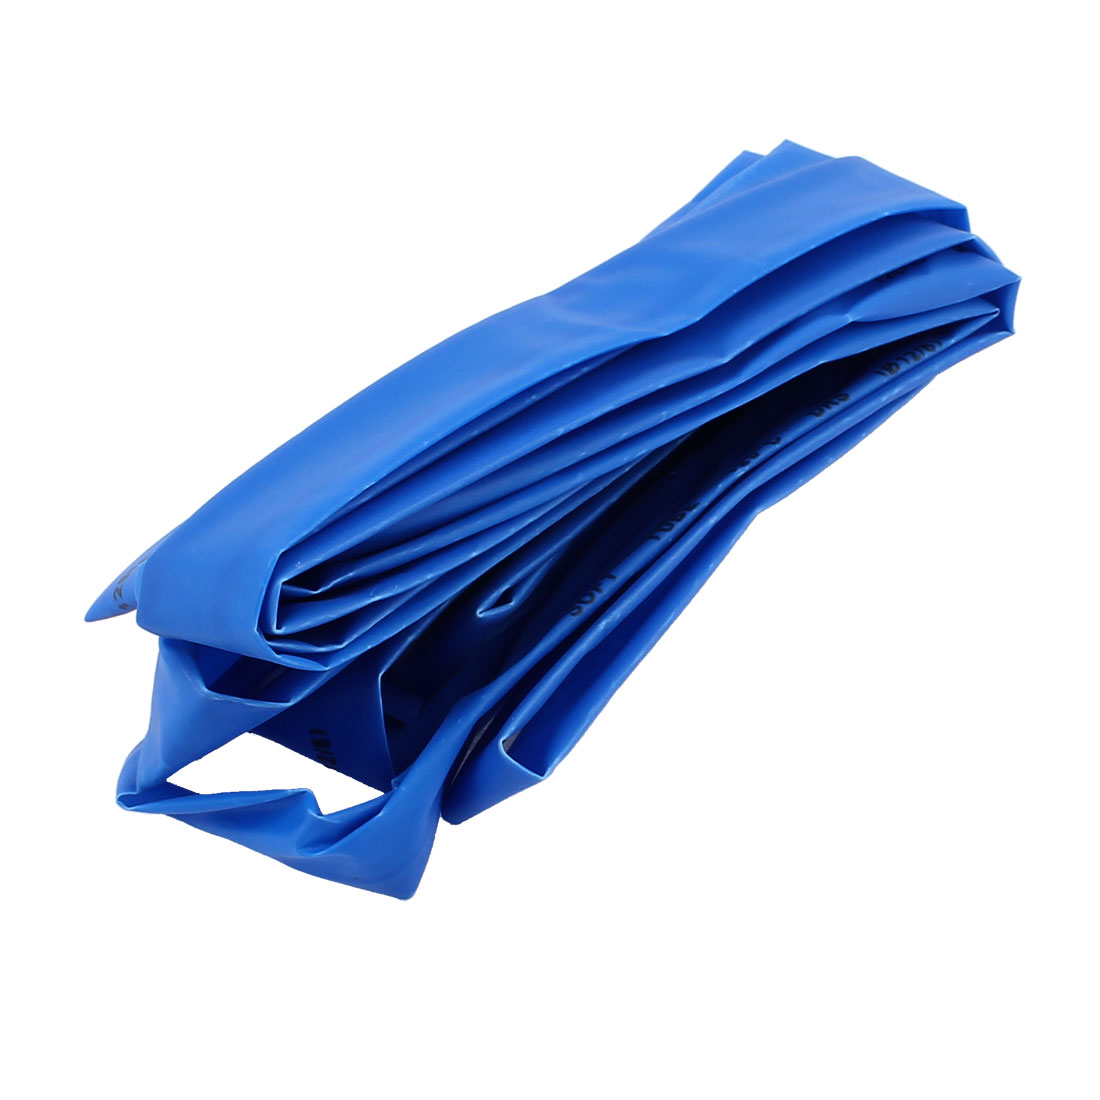 2.5M Length 12mm Dia Polyolefin Heat Shrinkable Tube Sleeving Blue